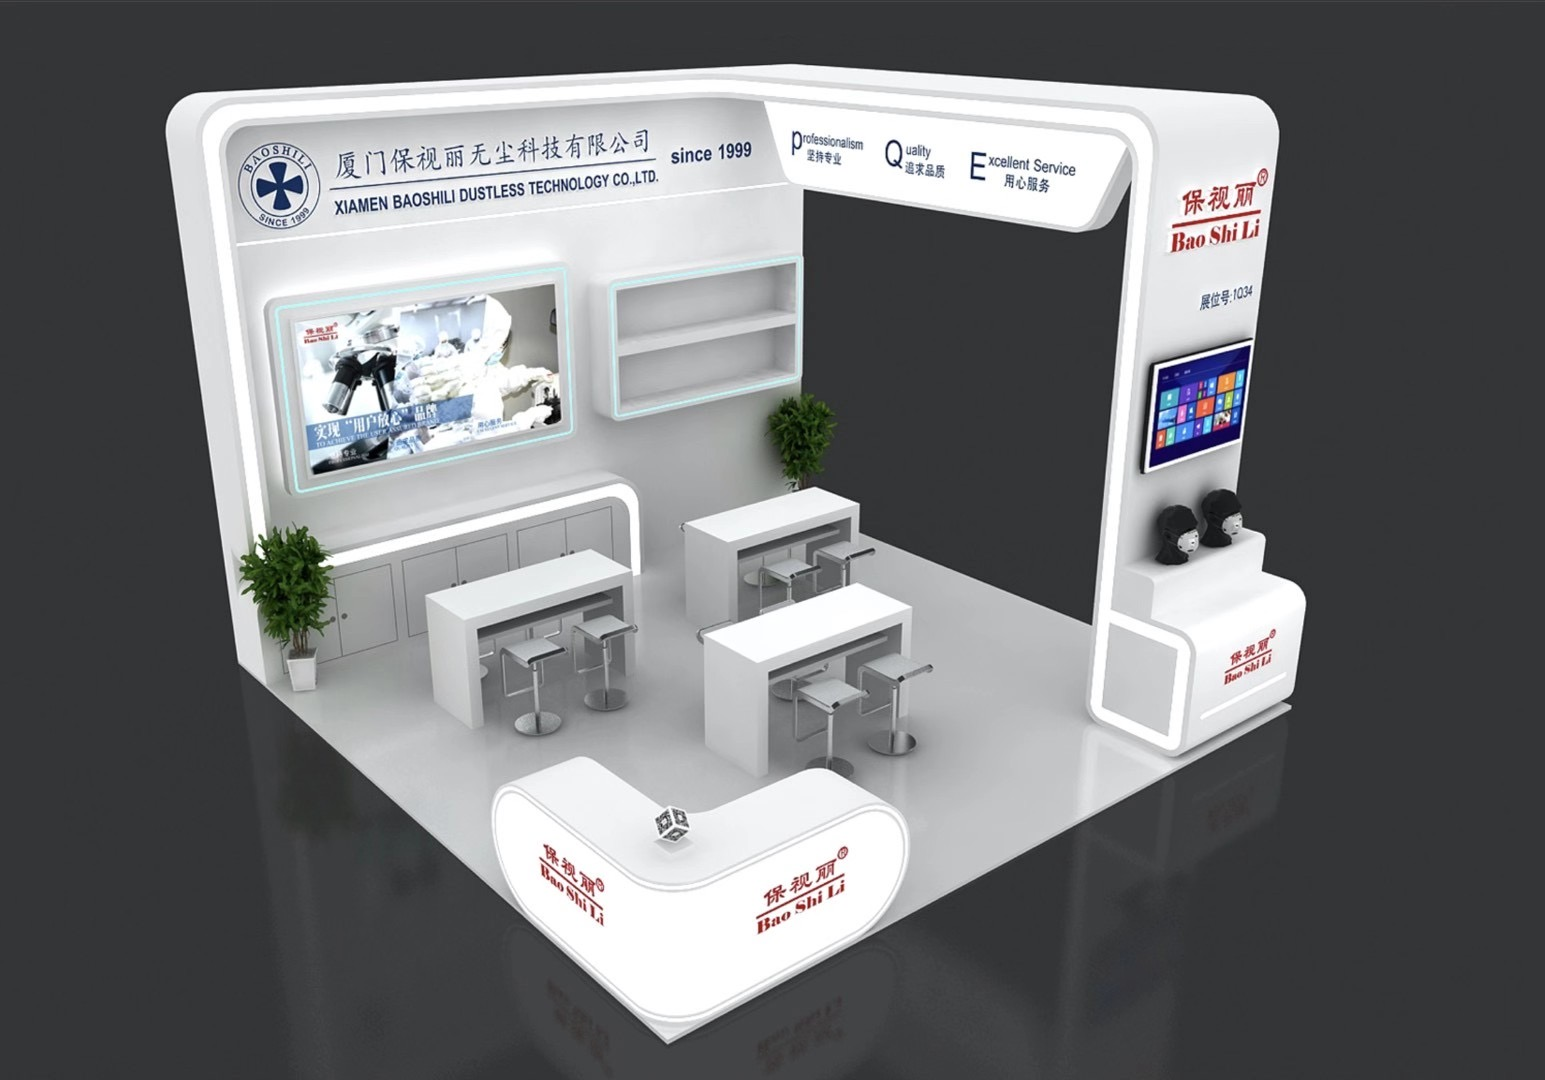 C-Touch & Display Shenzhen 2020 -Looking forward to your visiting